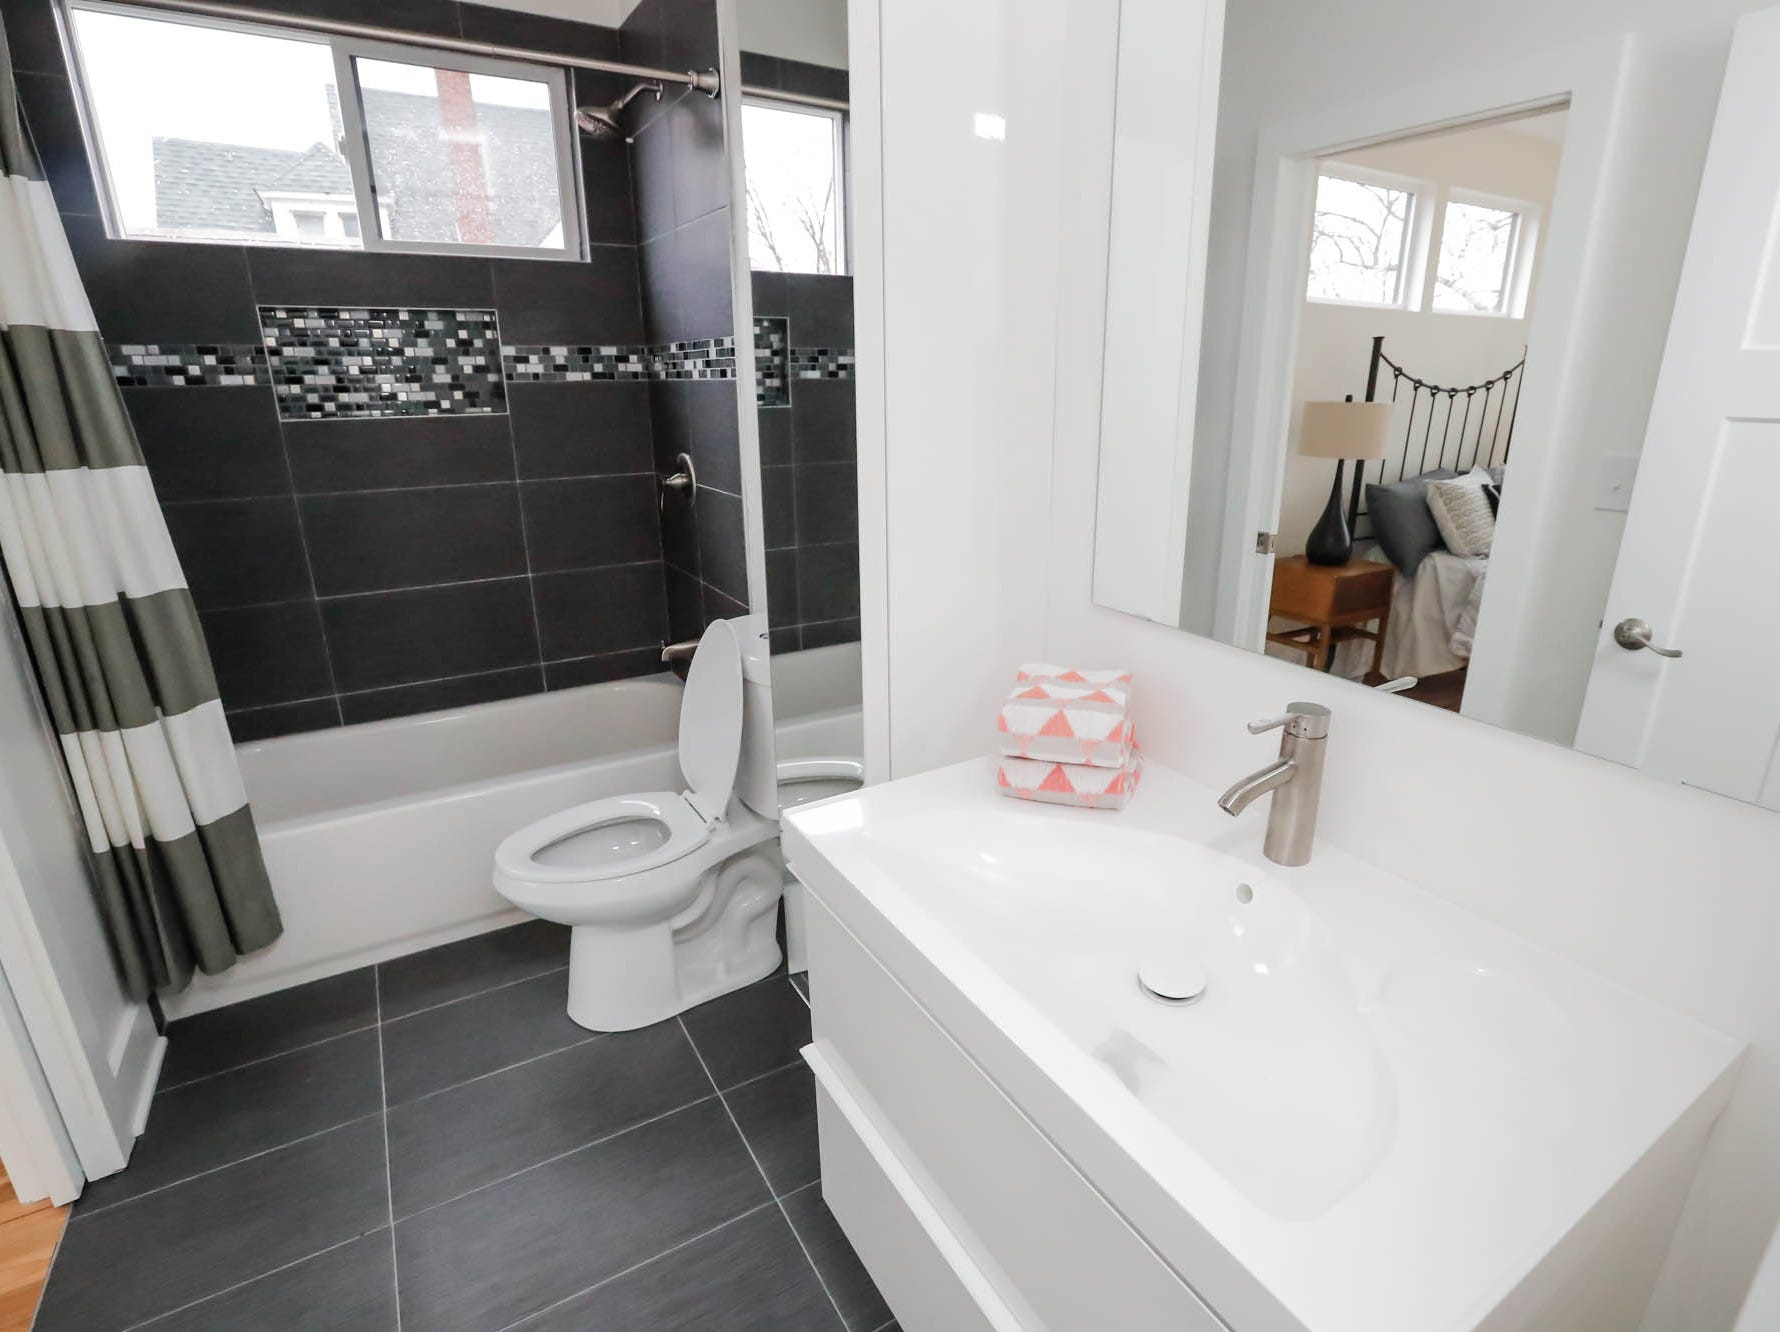 A second floor full bathroom features tile, and a floating vanity inside a newly built modern architectural home up for sale at 1134 Woodlawn Ave., Indianapolis, Ind., 46203, in the heart of the historic Fountain Square neighborhood on Wednesday, January 23, 2019. The three-story home, which features 2,030-square-feet and an open space concept tile and hardwood floors are priced at $479,900.